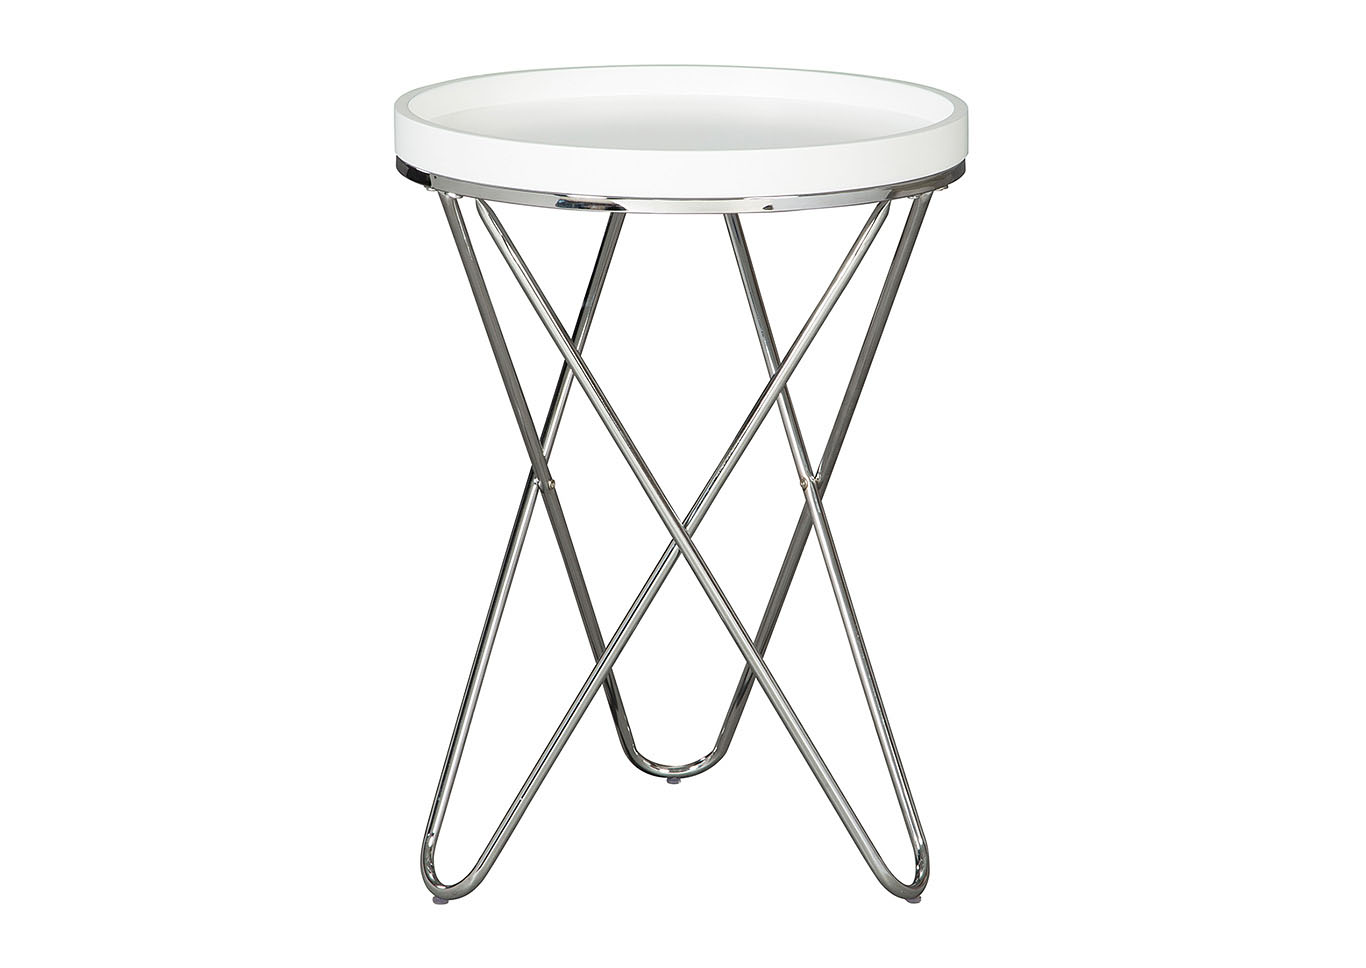 white round end table accent tables small living room leather full size zinc monarch specialities coffee outdoor wicker with glass top quilted runner ideas family entry furniture